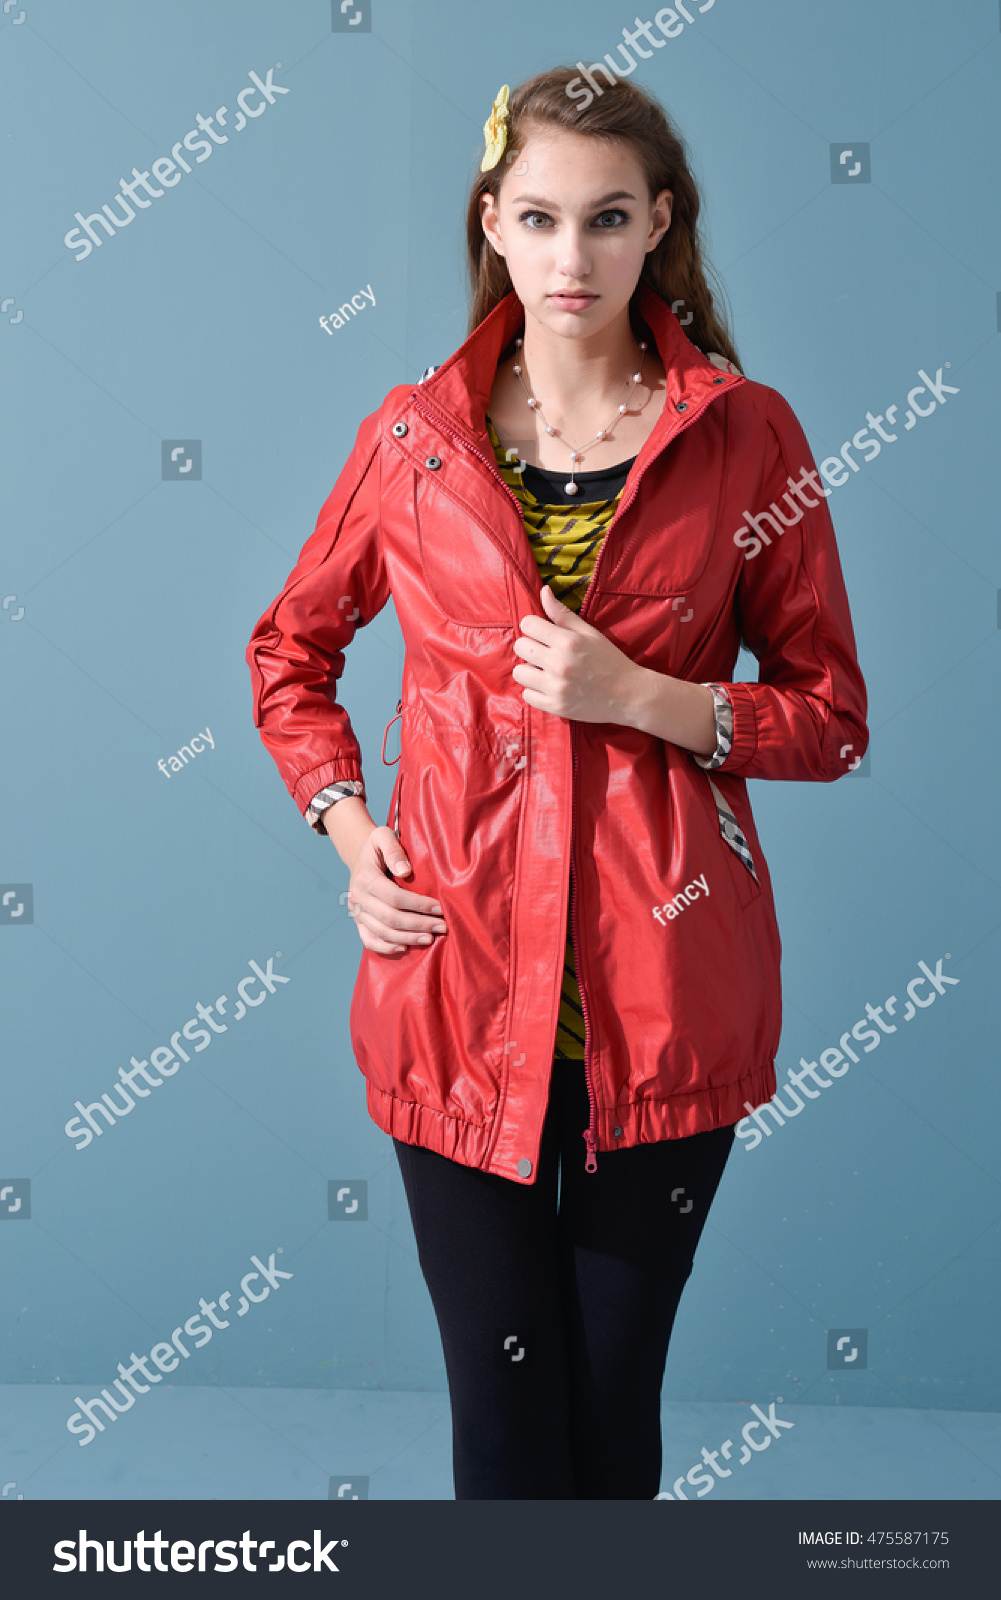 Portrait Young Model Red Jacket Dress Stock Photo 475587175 ...